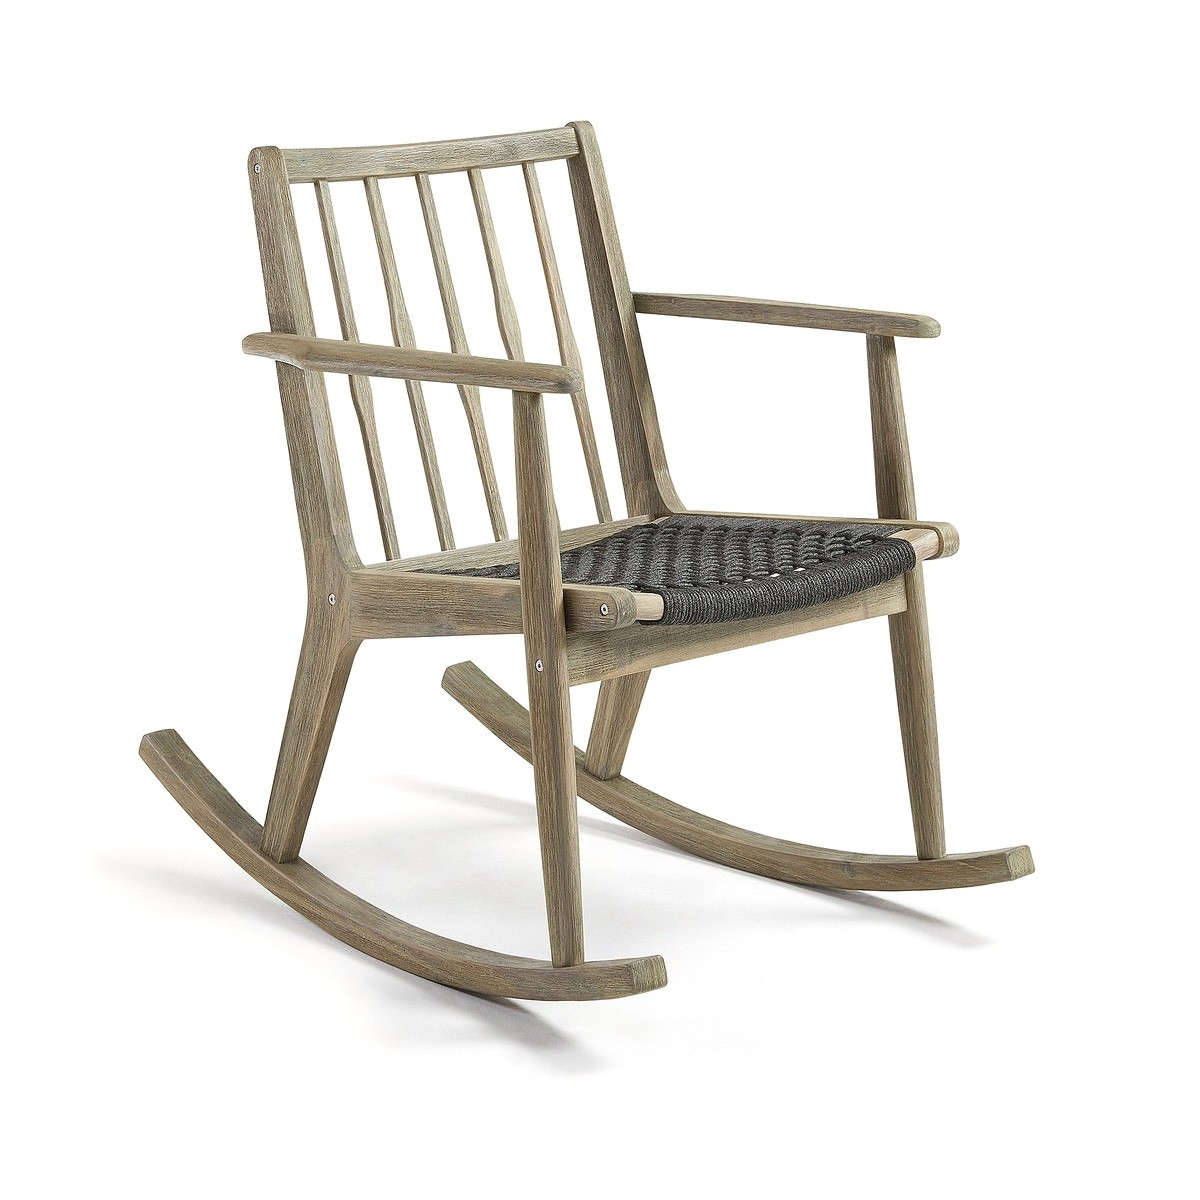 Krinis Acacia Timber Rocking Chair with Rope Seat